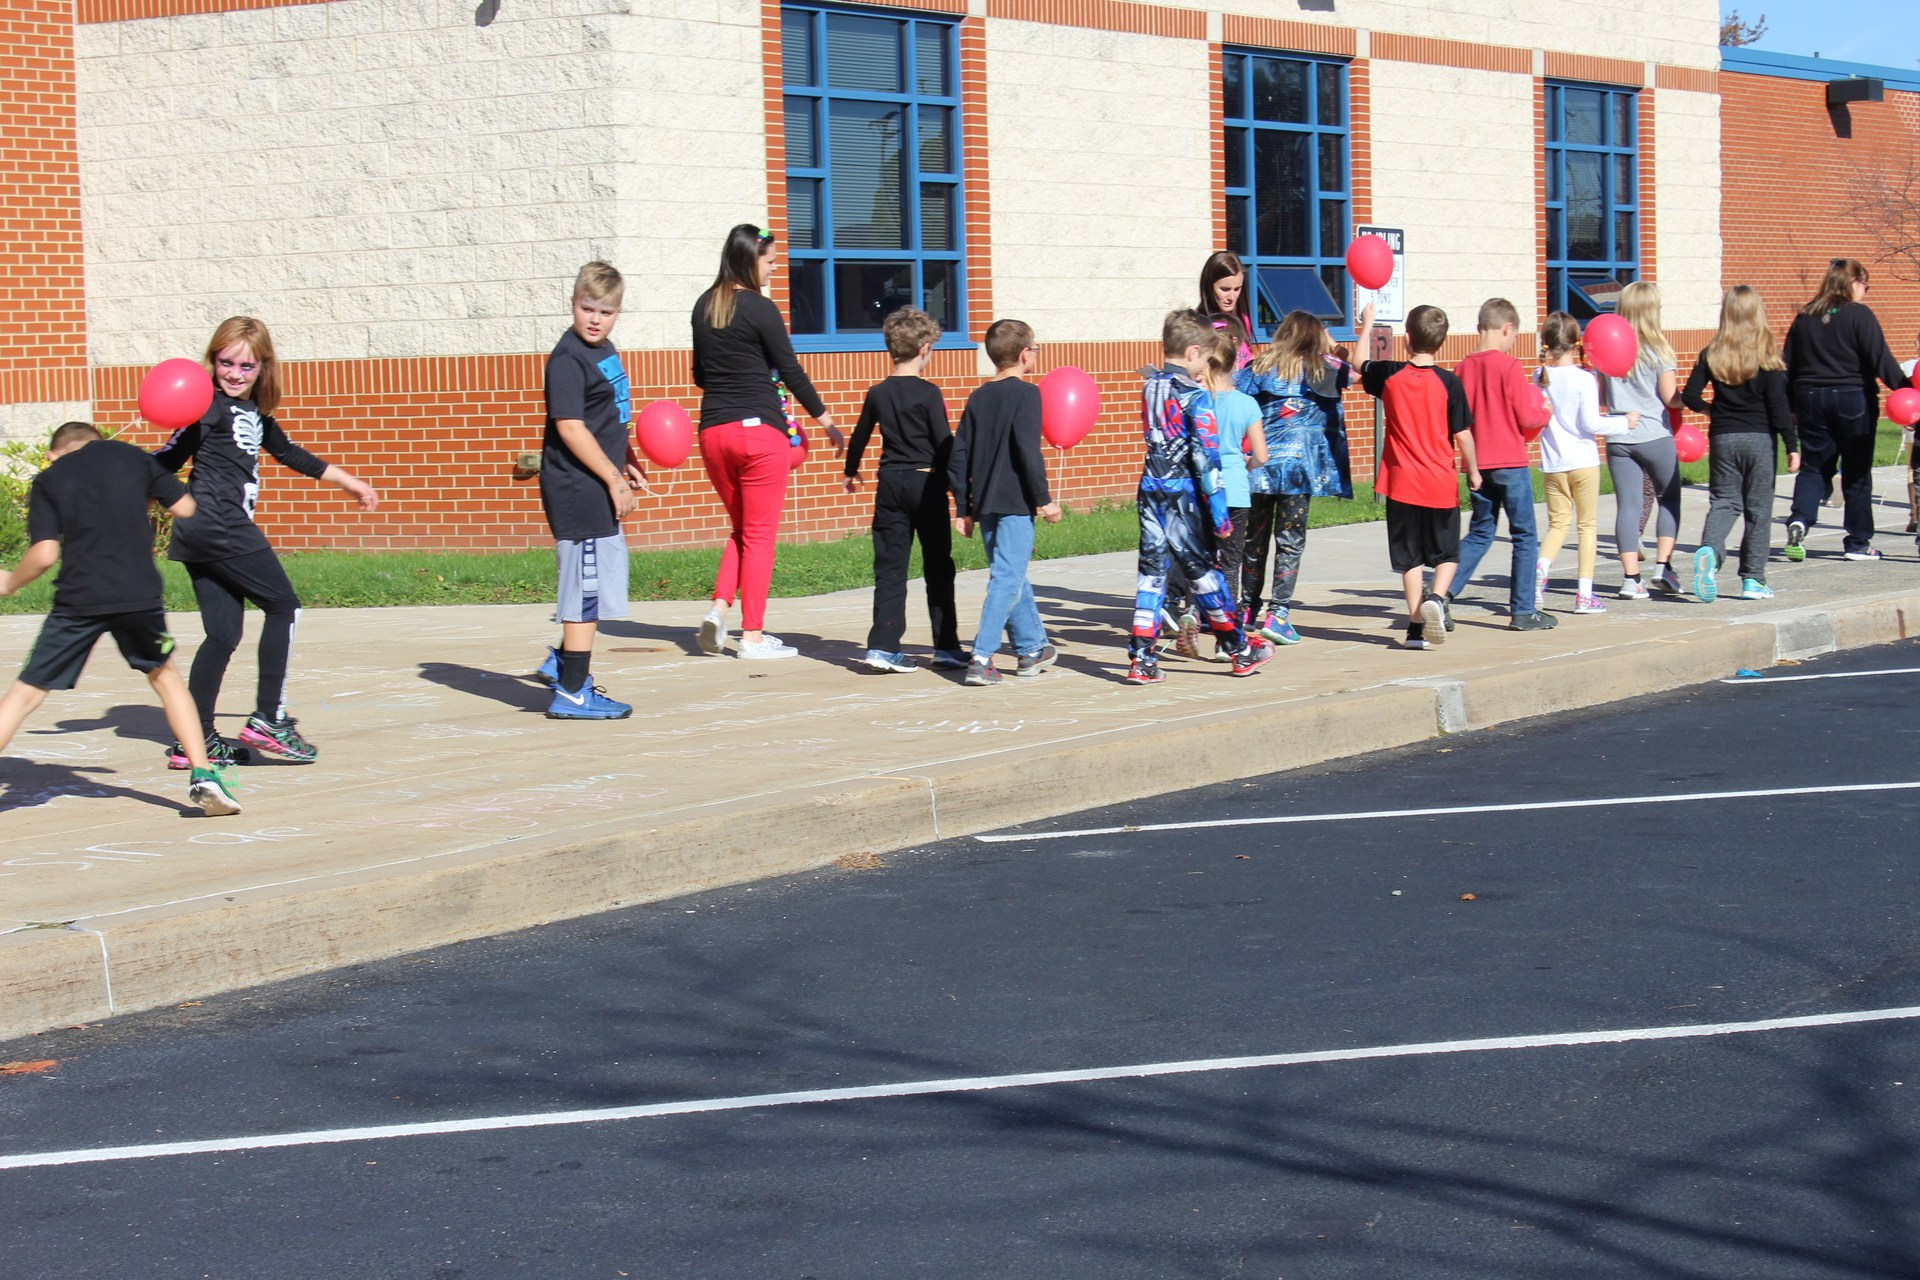 Elementary students at balloon launch Oct. 27, 2017